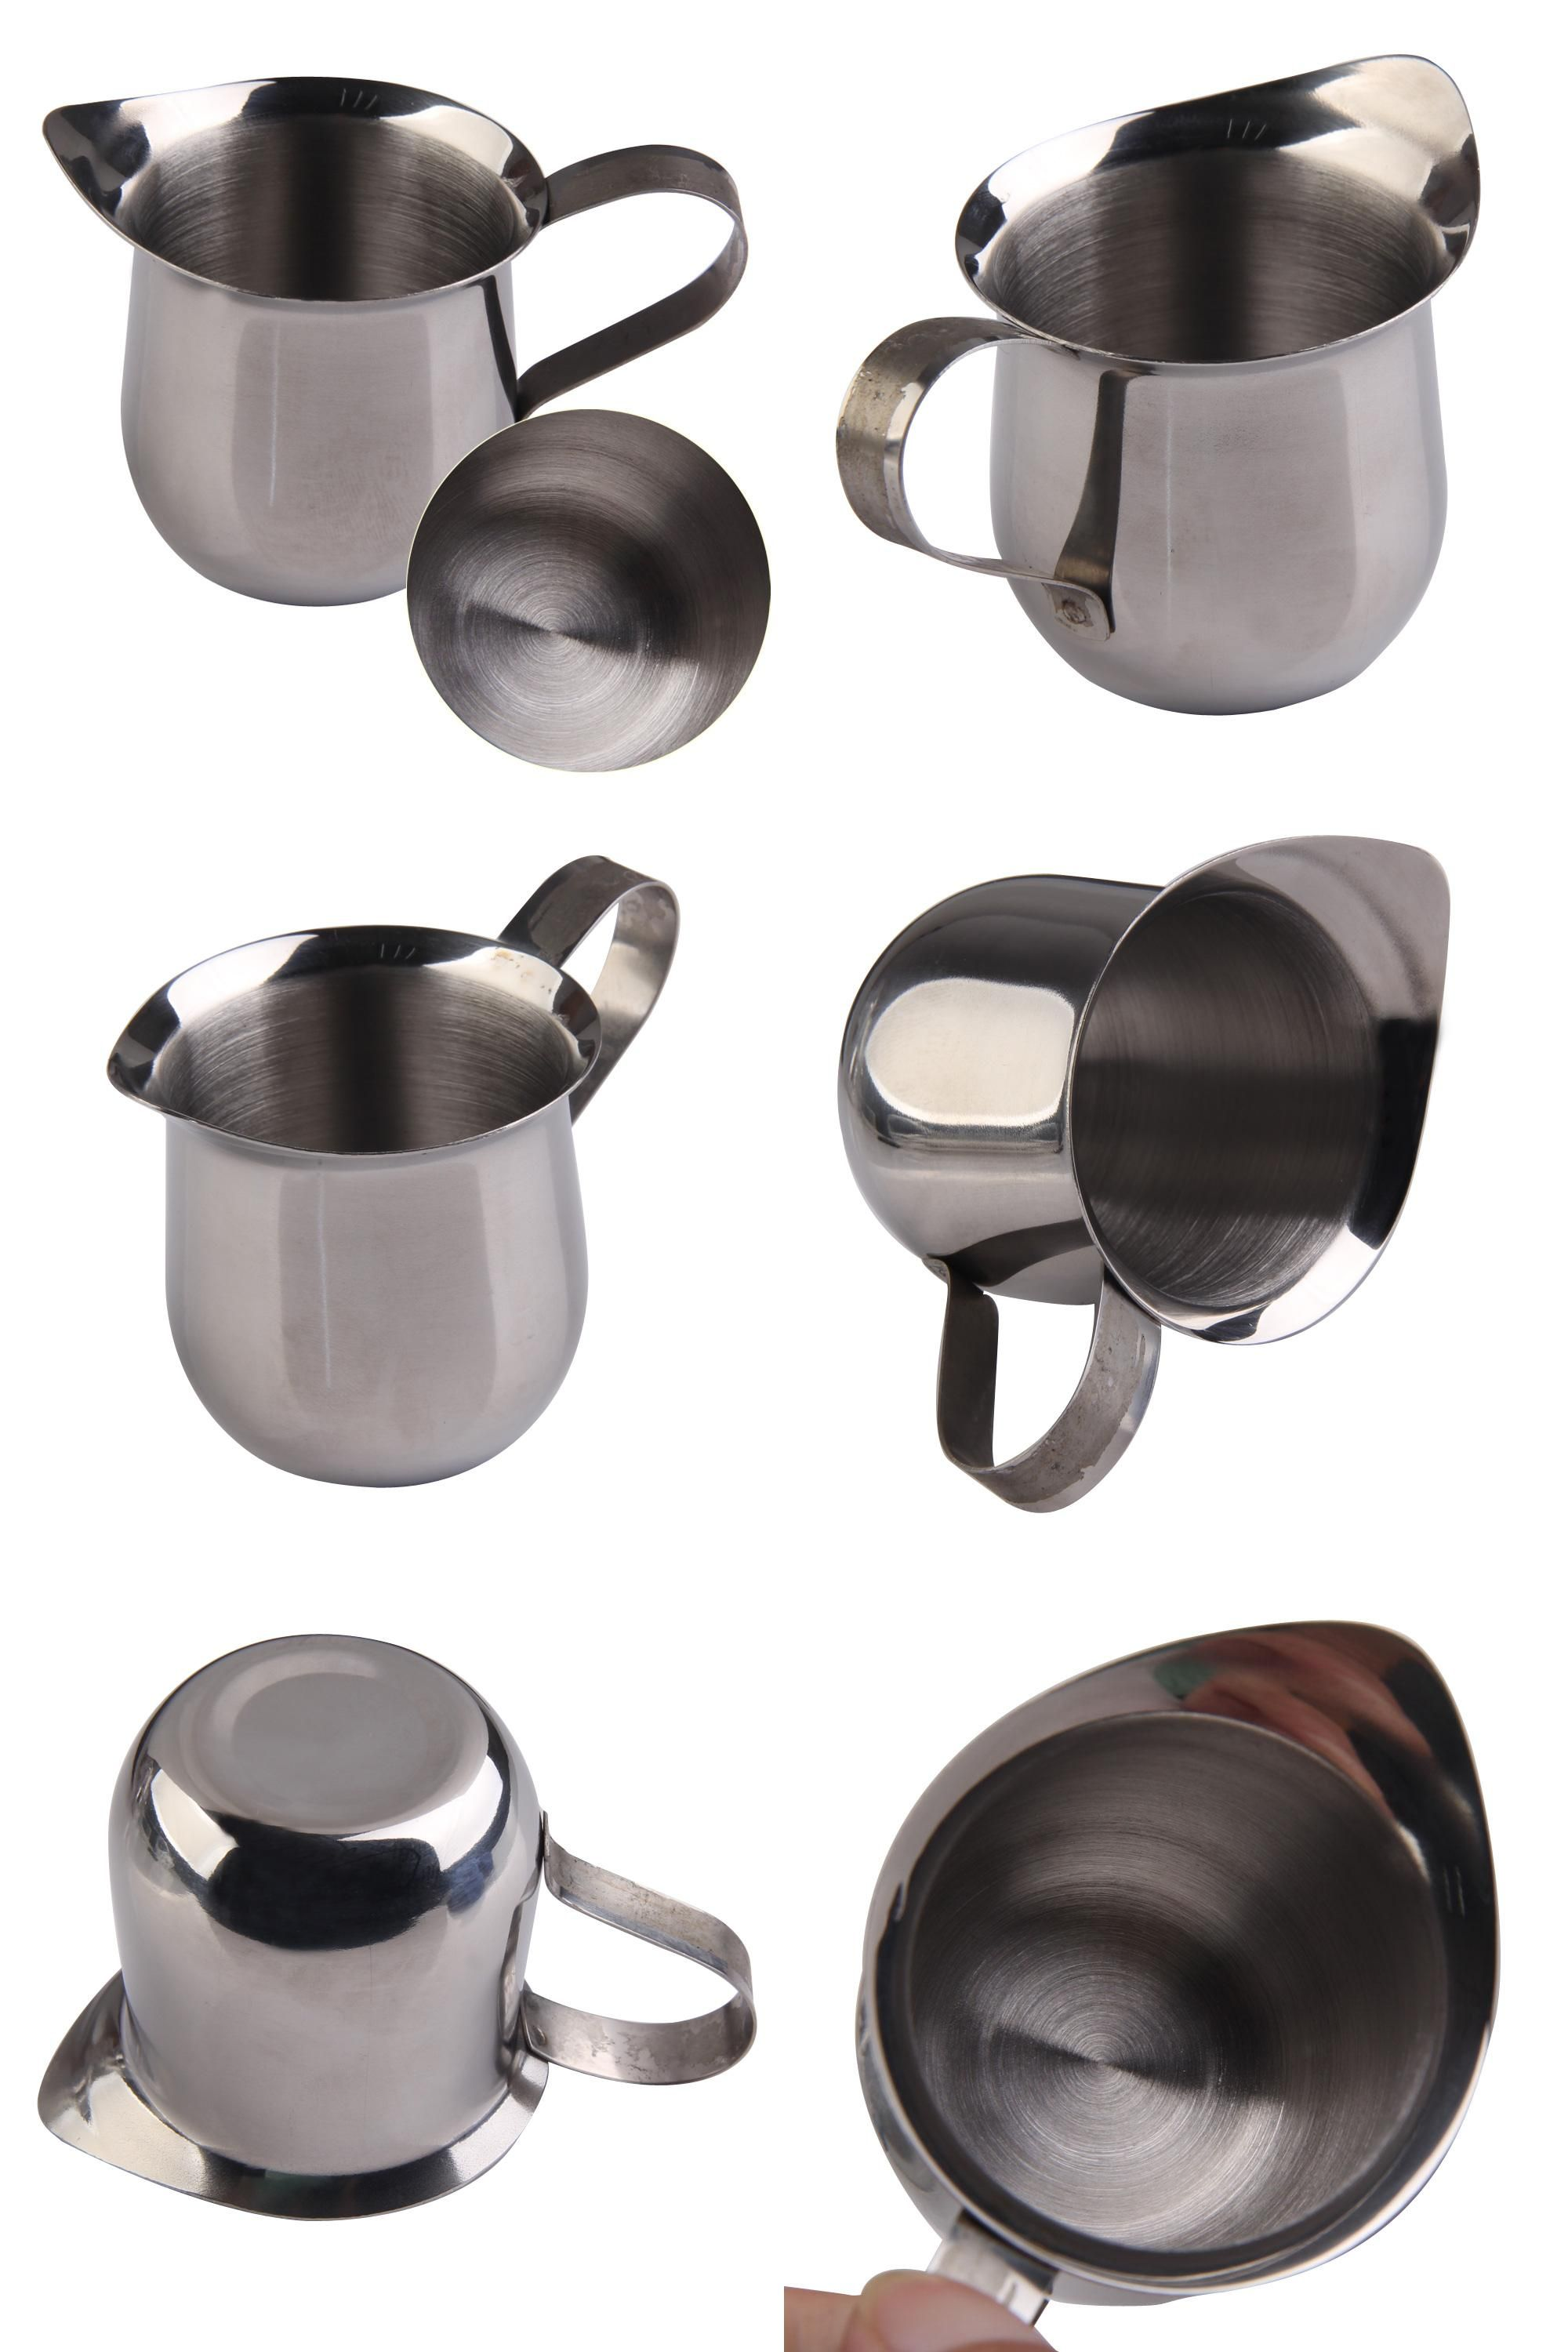 [Visit to Buy] New Stainless Steel Coffee Shop Small Milk